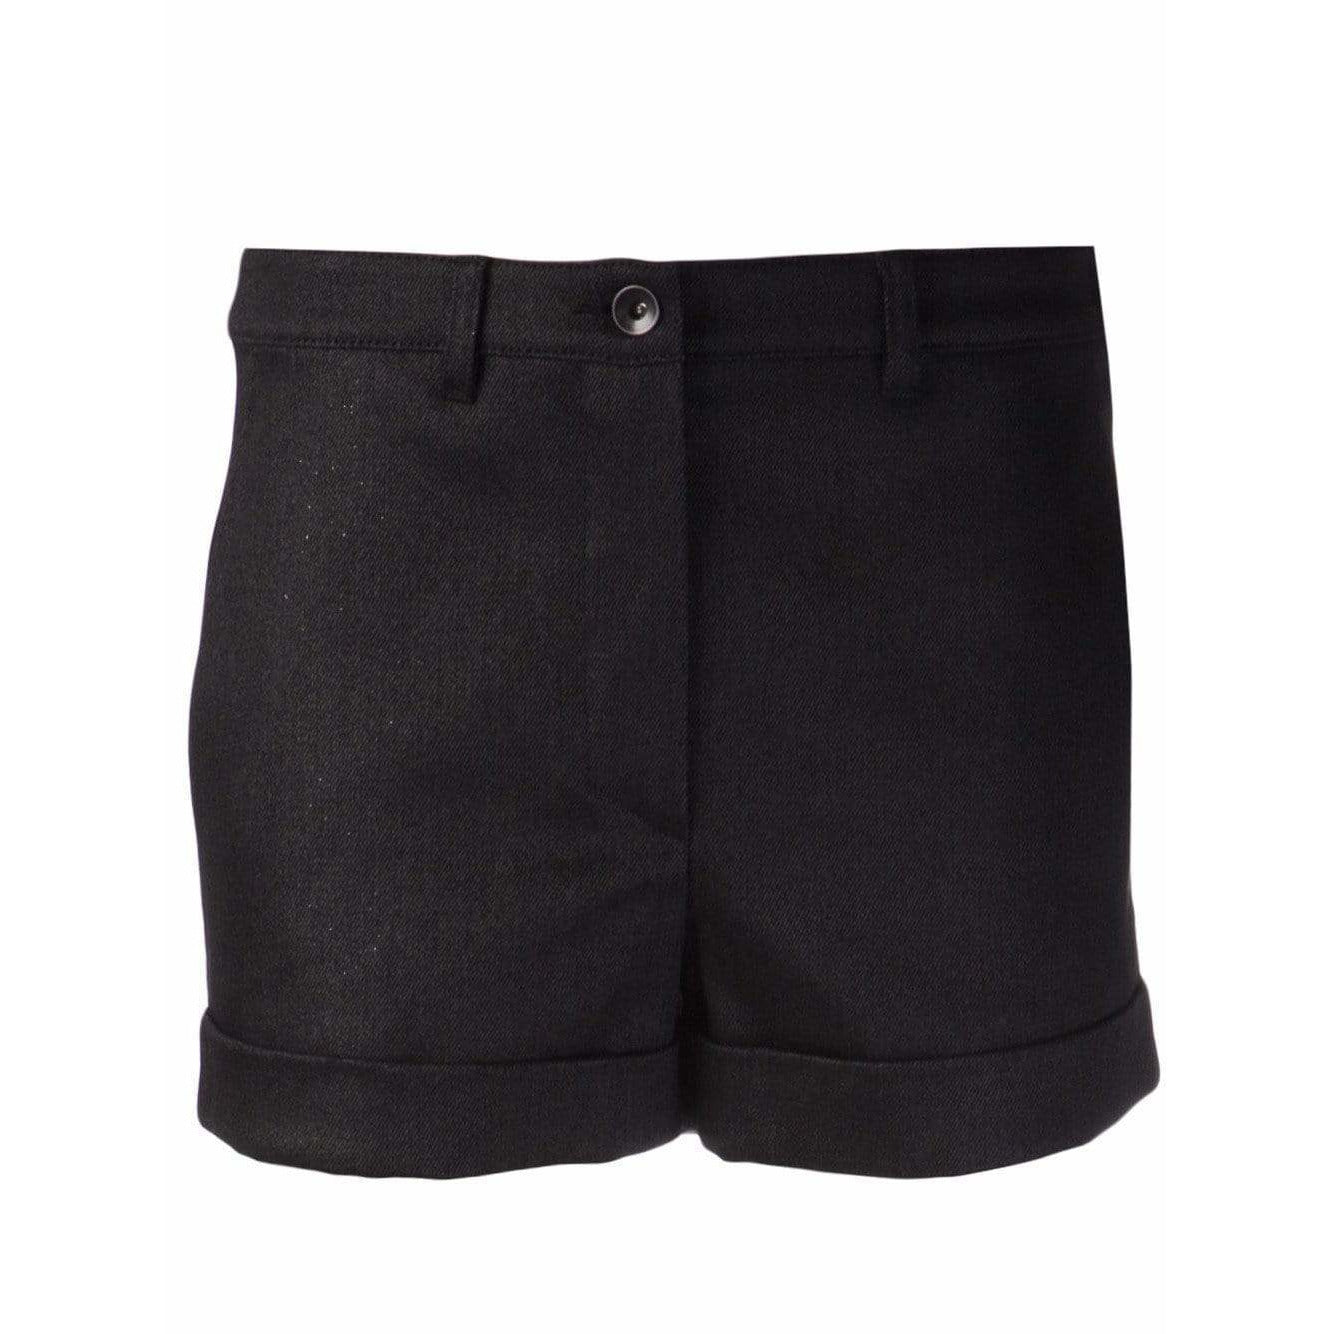 Gareth Pugh Womens Shorts 44 / Black Shorts